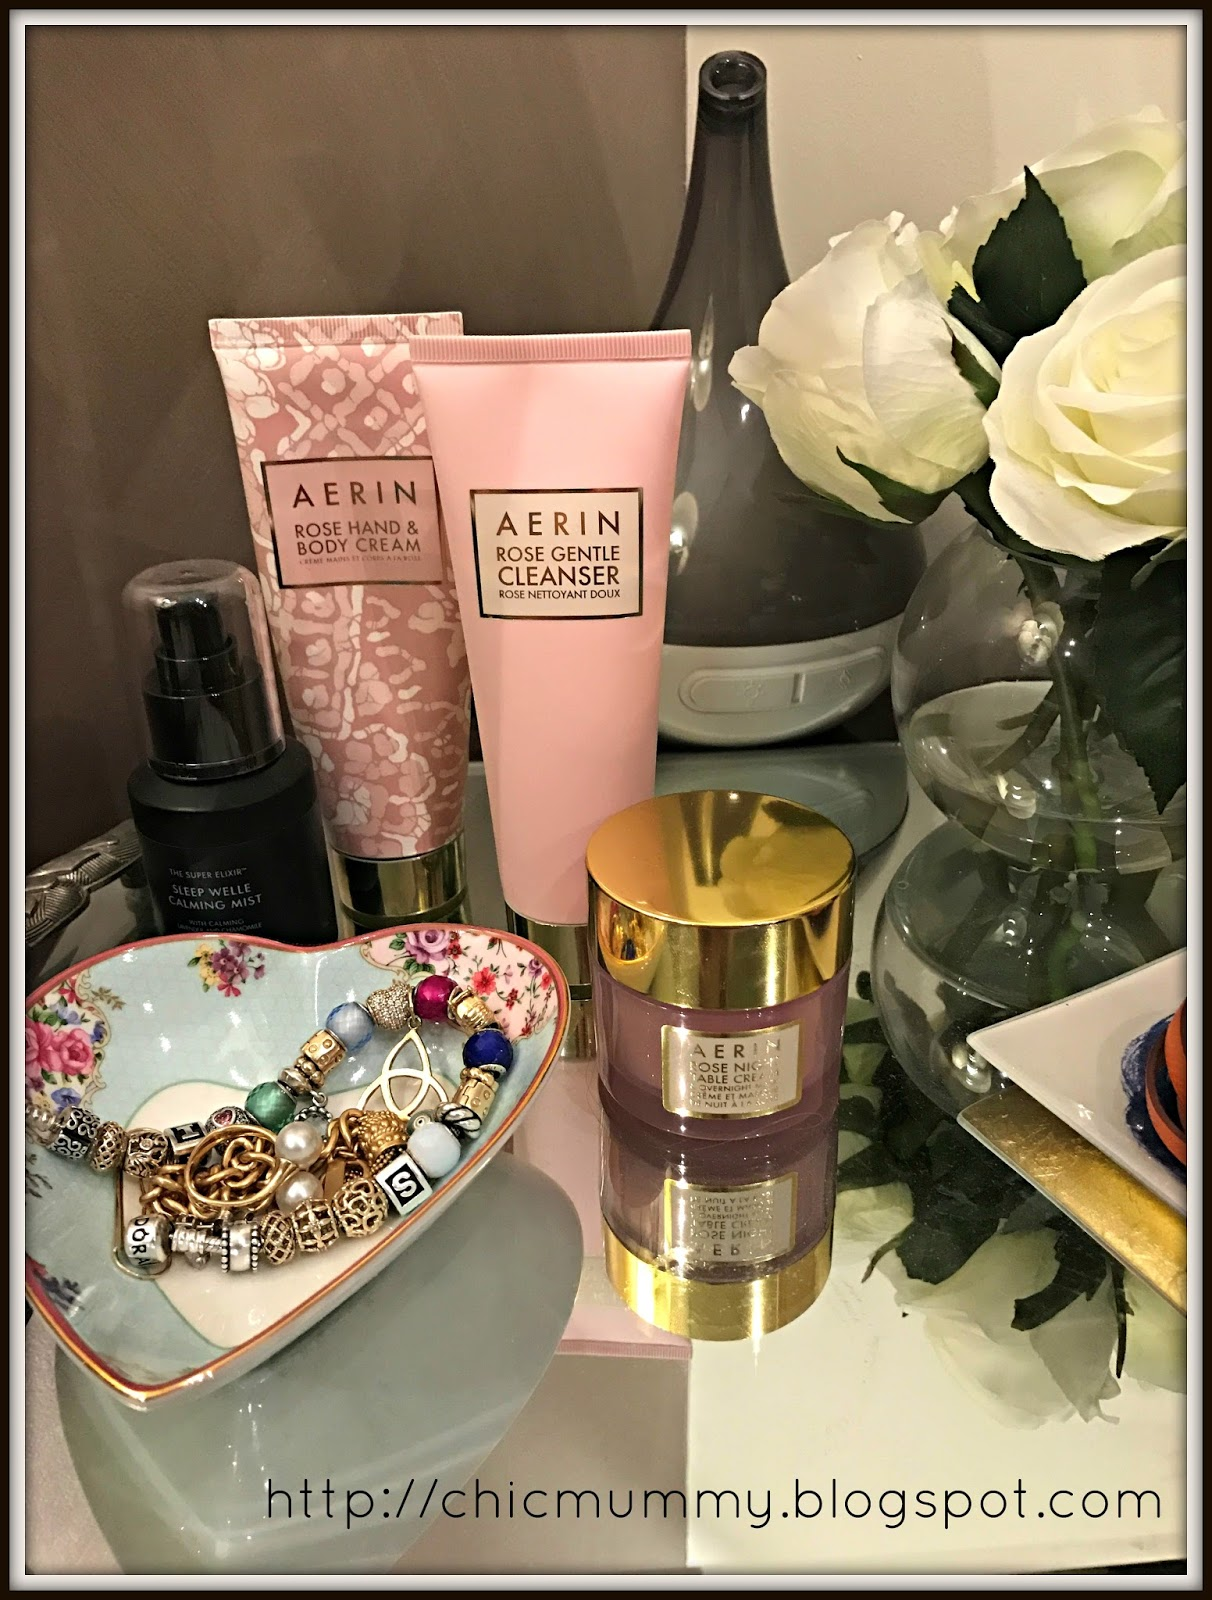 1f894ae62c You all know I love anything AERIN, so when I ran out of my night cream the  other day, the next day I went straight to David Jones to buy Aerin's  latest ...